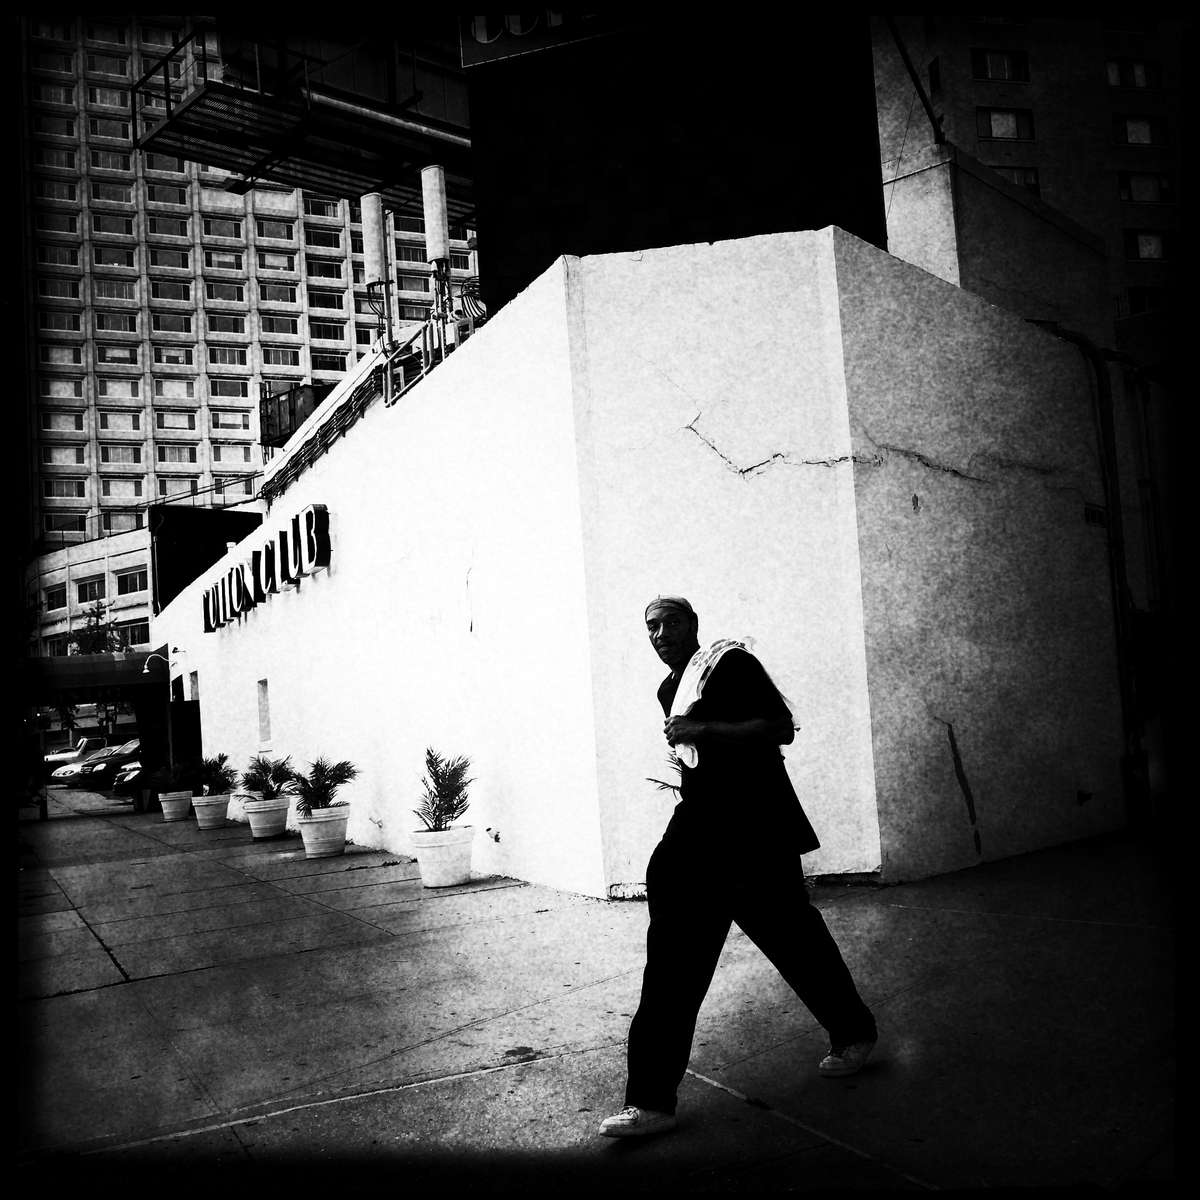 Man in West Harlem, as the area is drastically changing. #westharlem